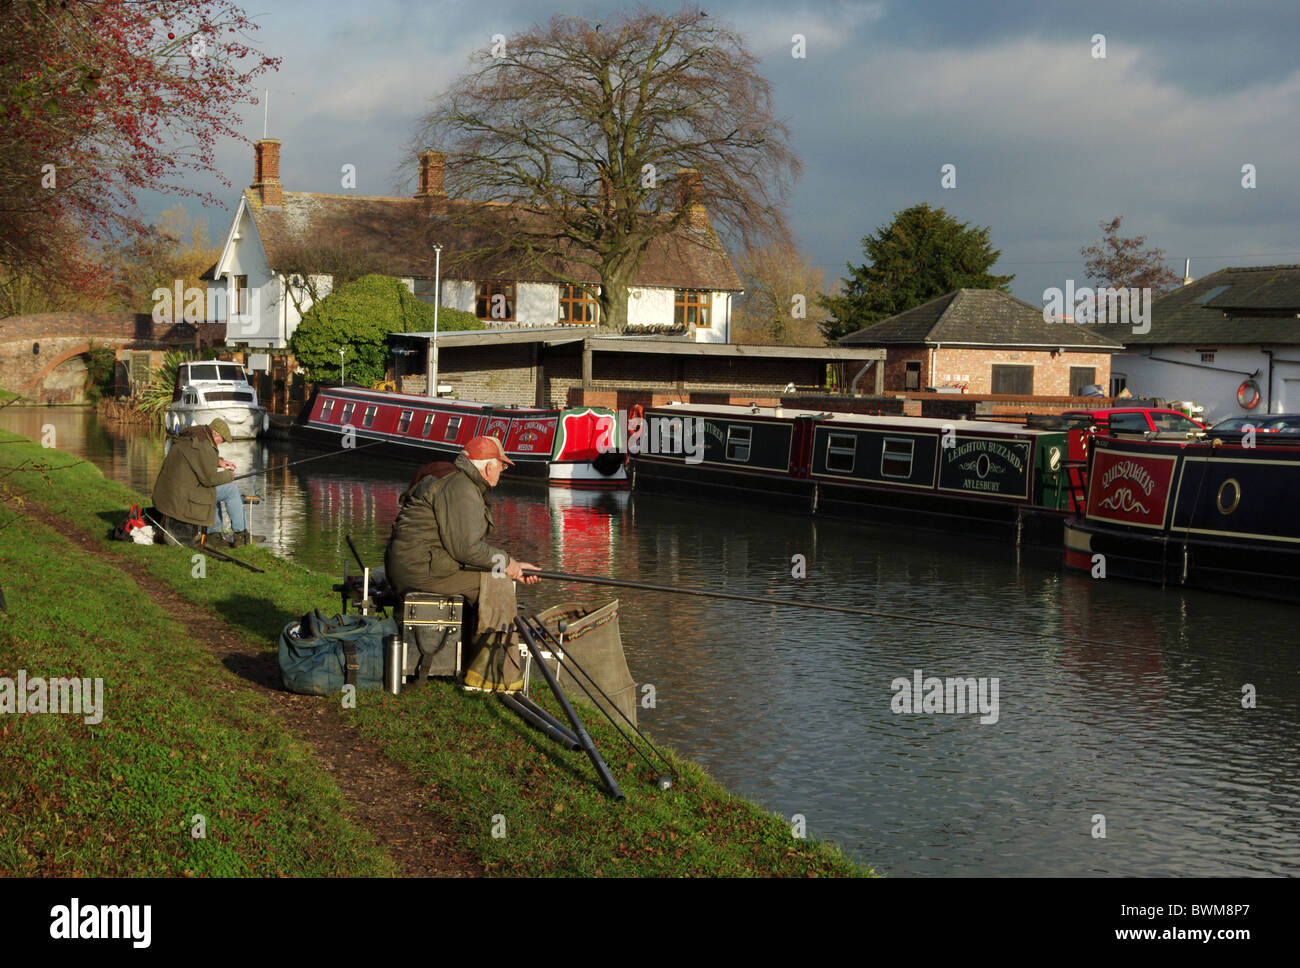 Two fishermen on the banks of the Grand Union Canal at Blisworth Arm, Northamptonshire, UK - Stock Image